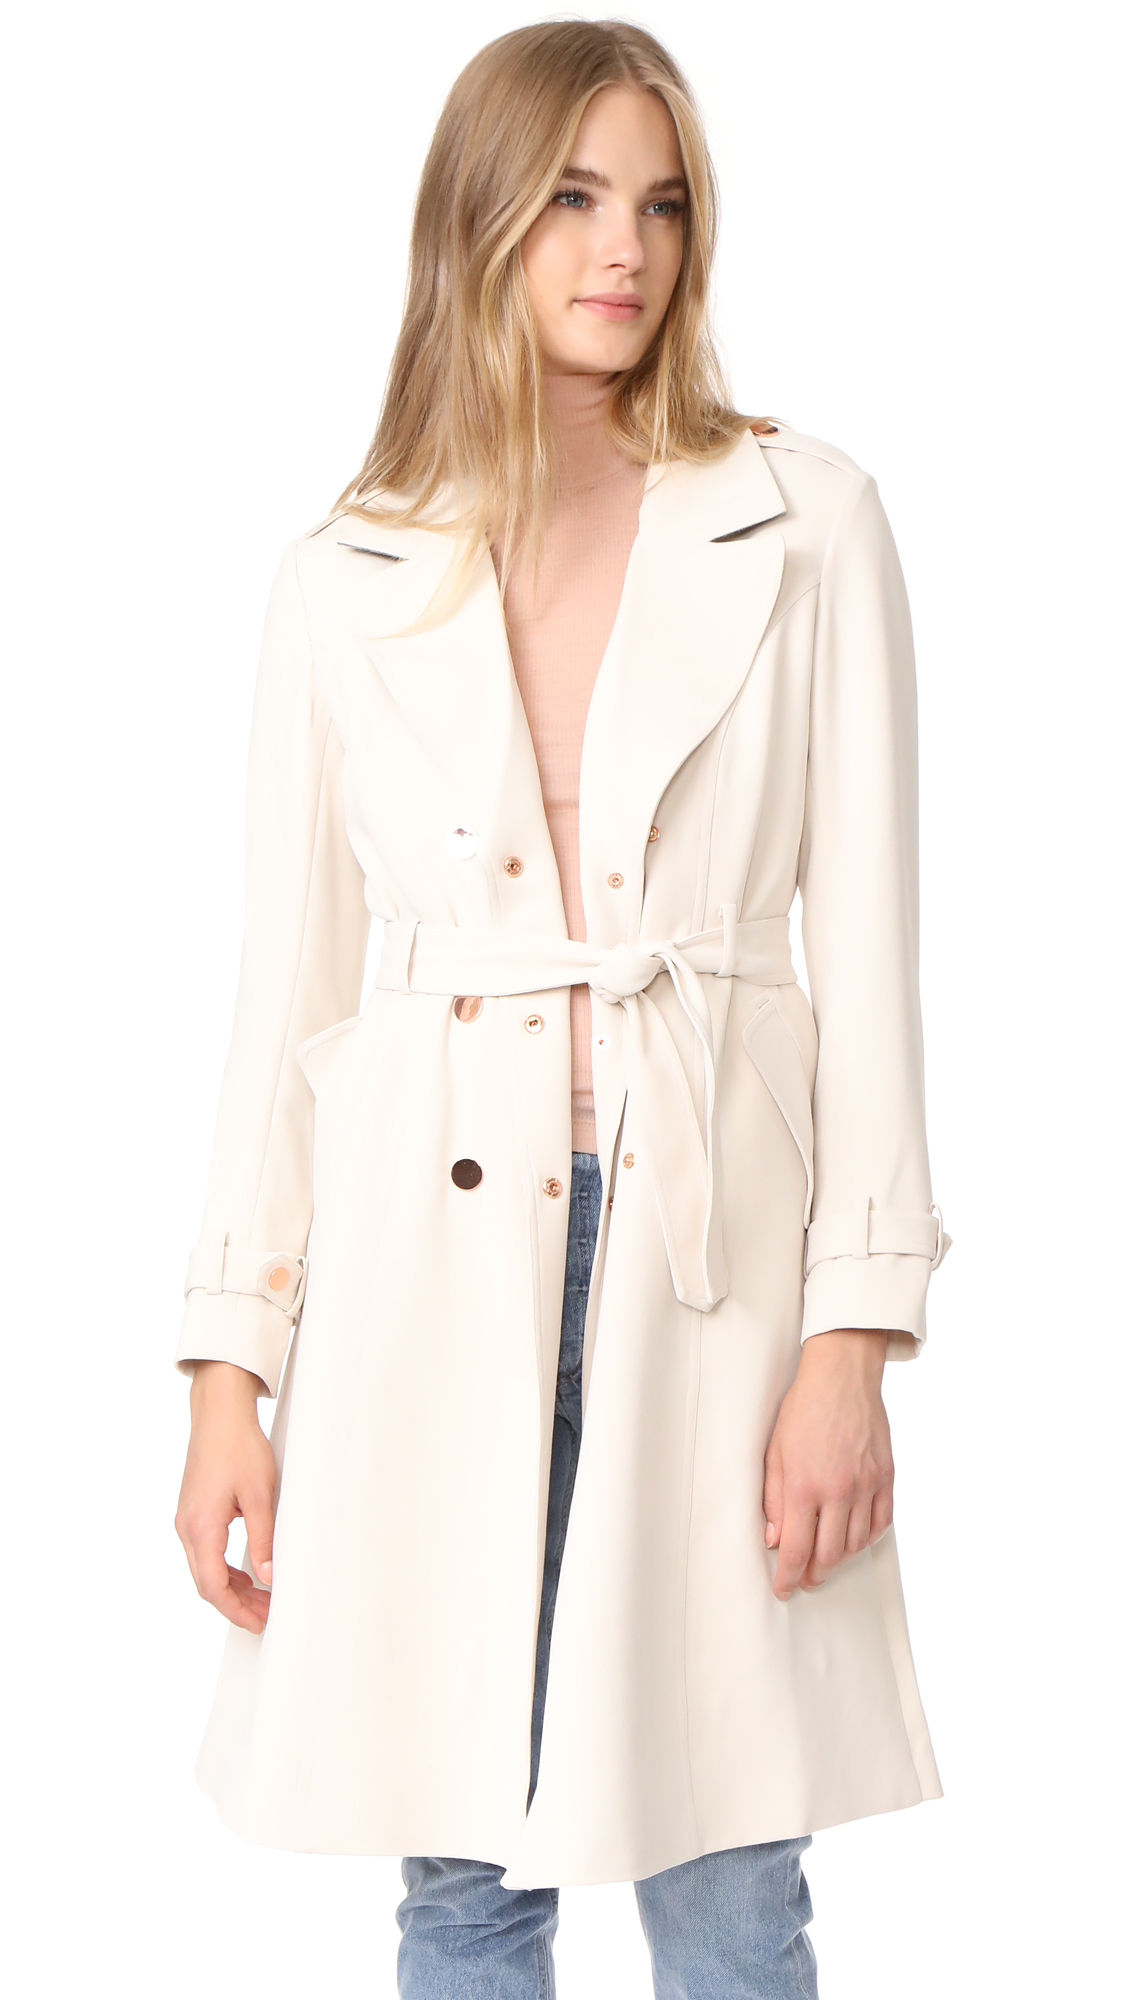 LAVEER Angelina Trench Coat - Stone